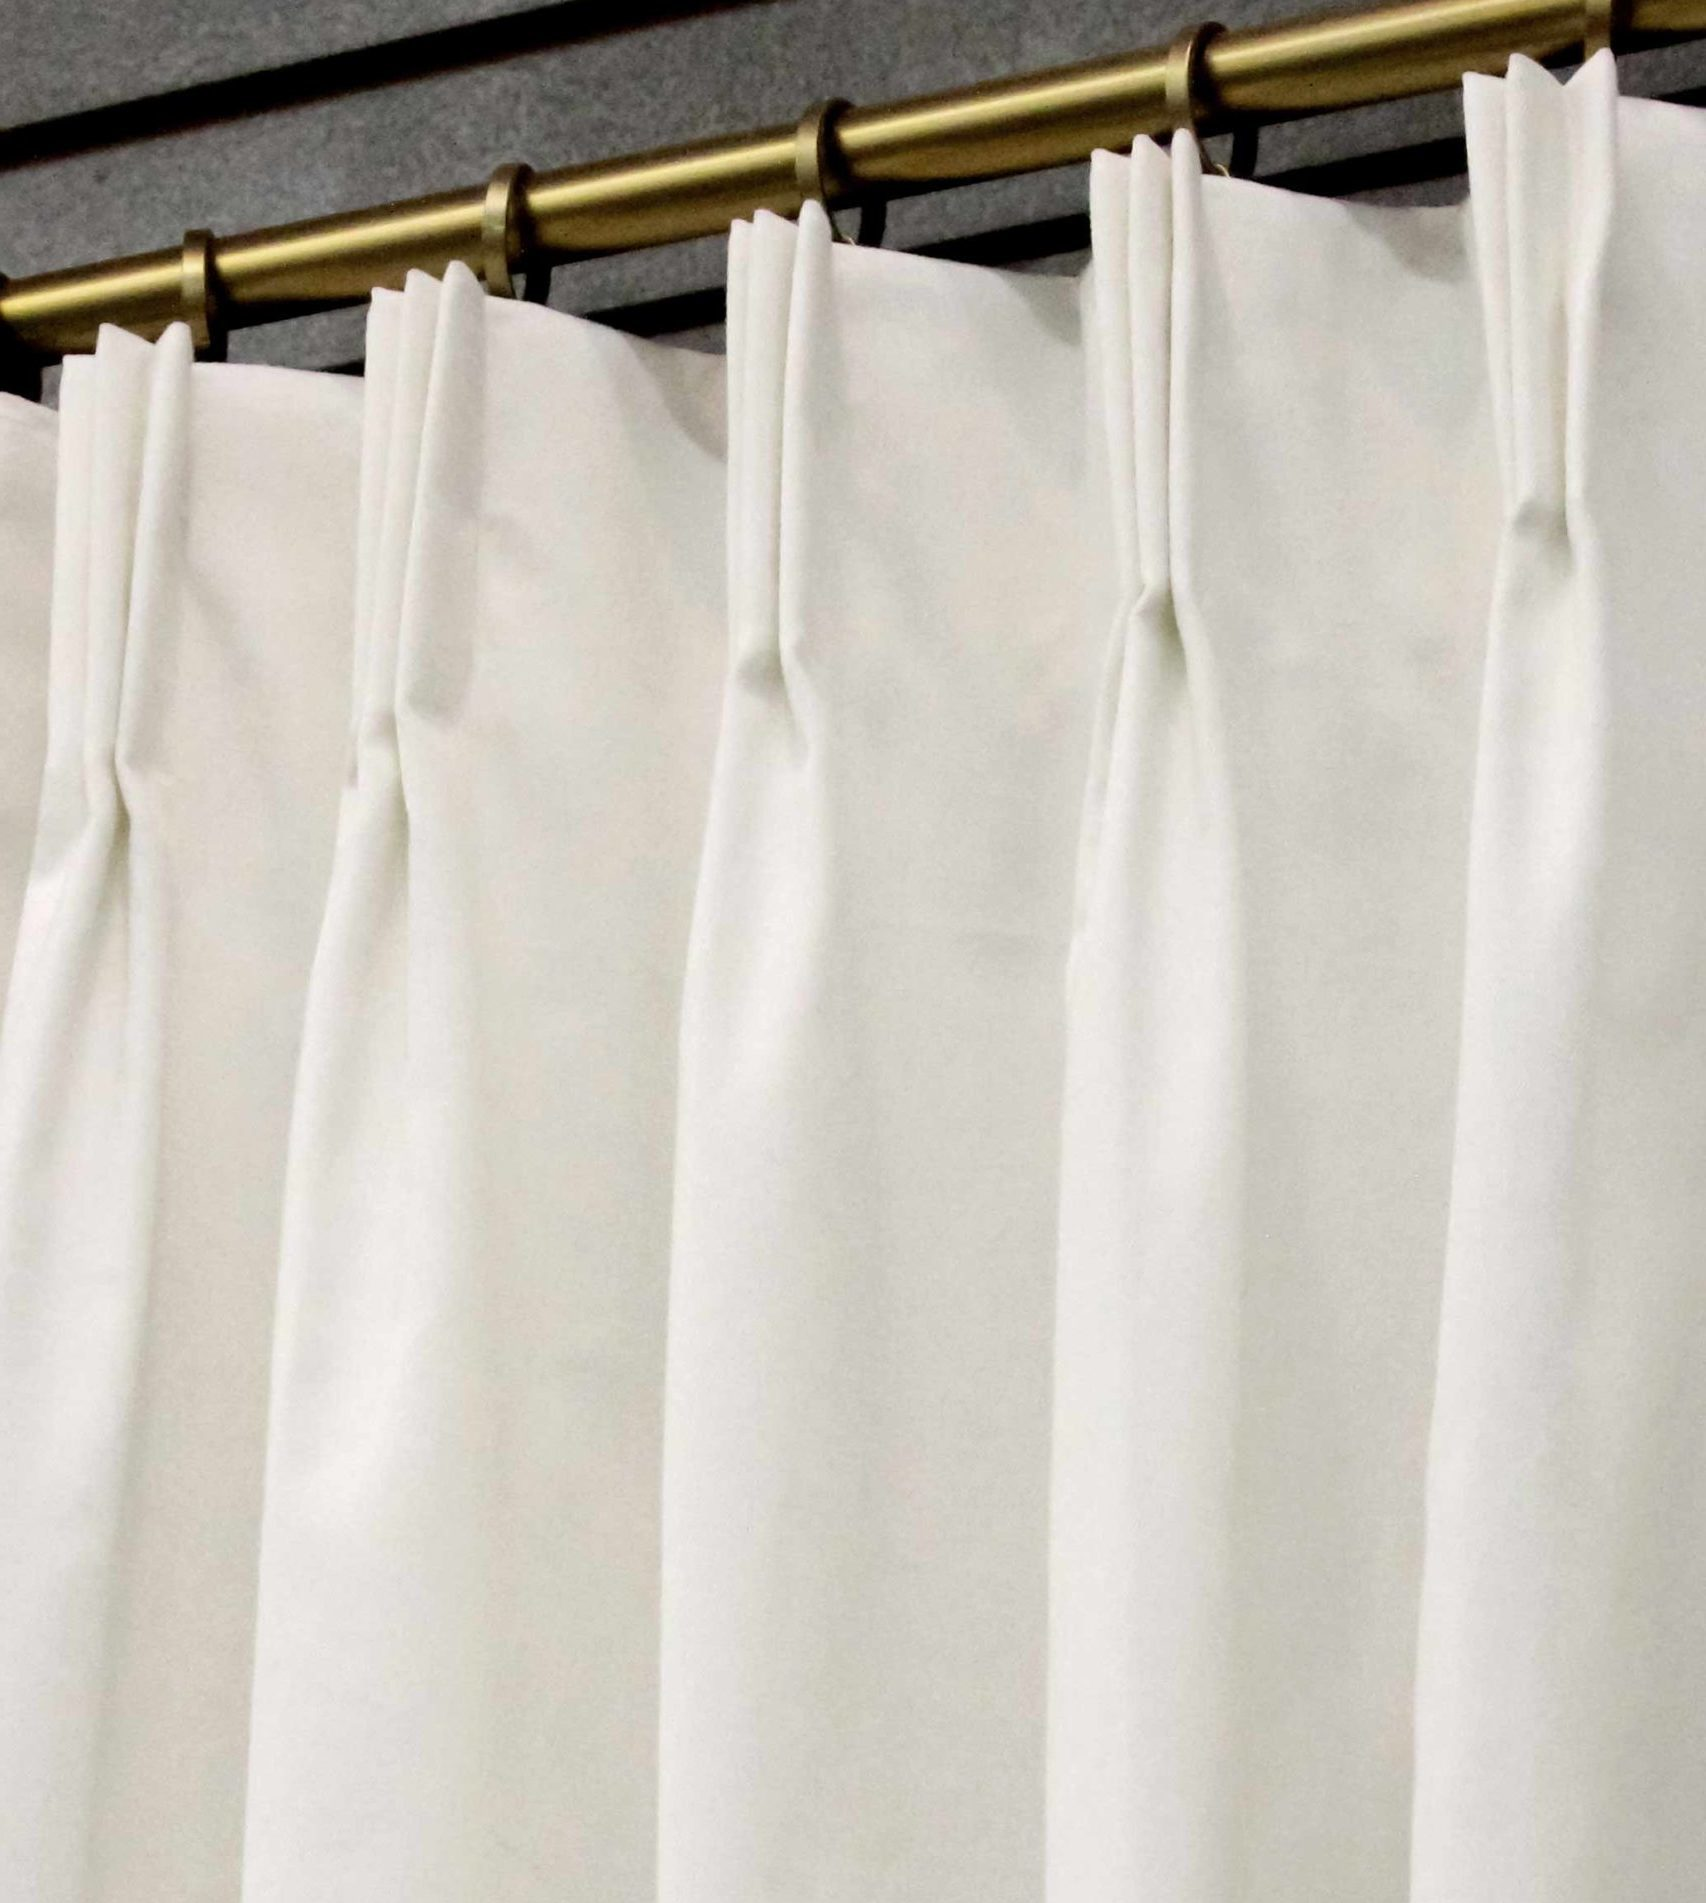 7 day custom pleated lined drapes in white fine twill 2 panels